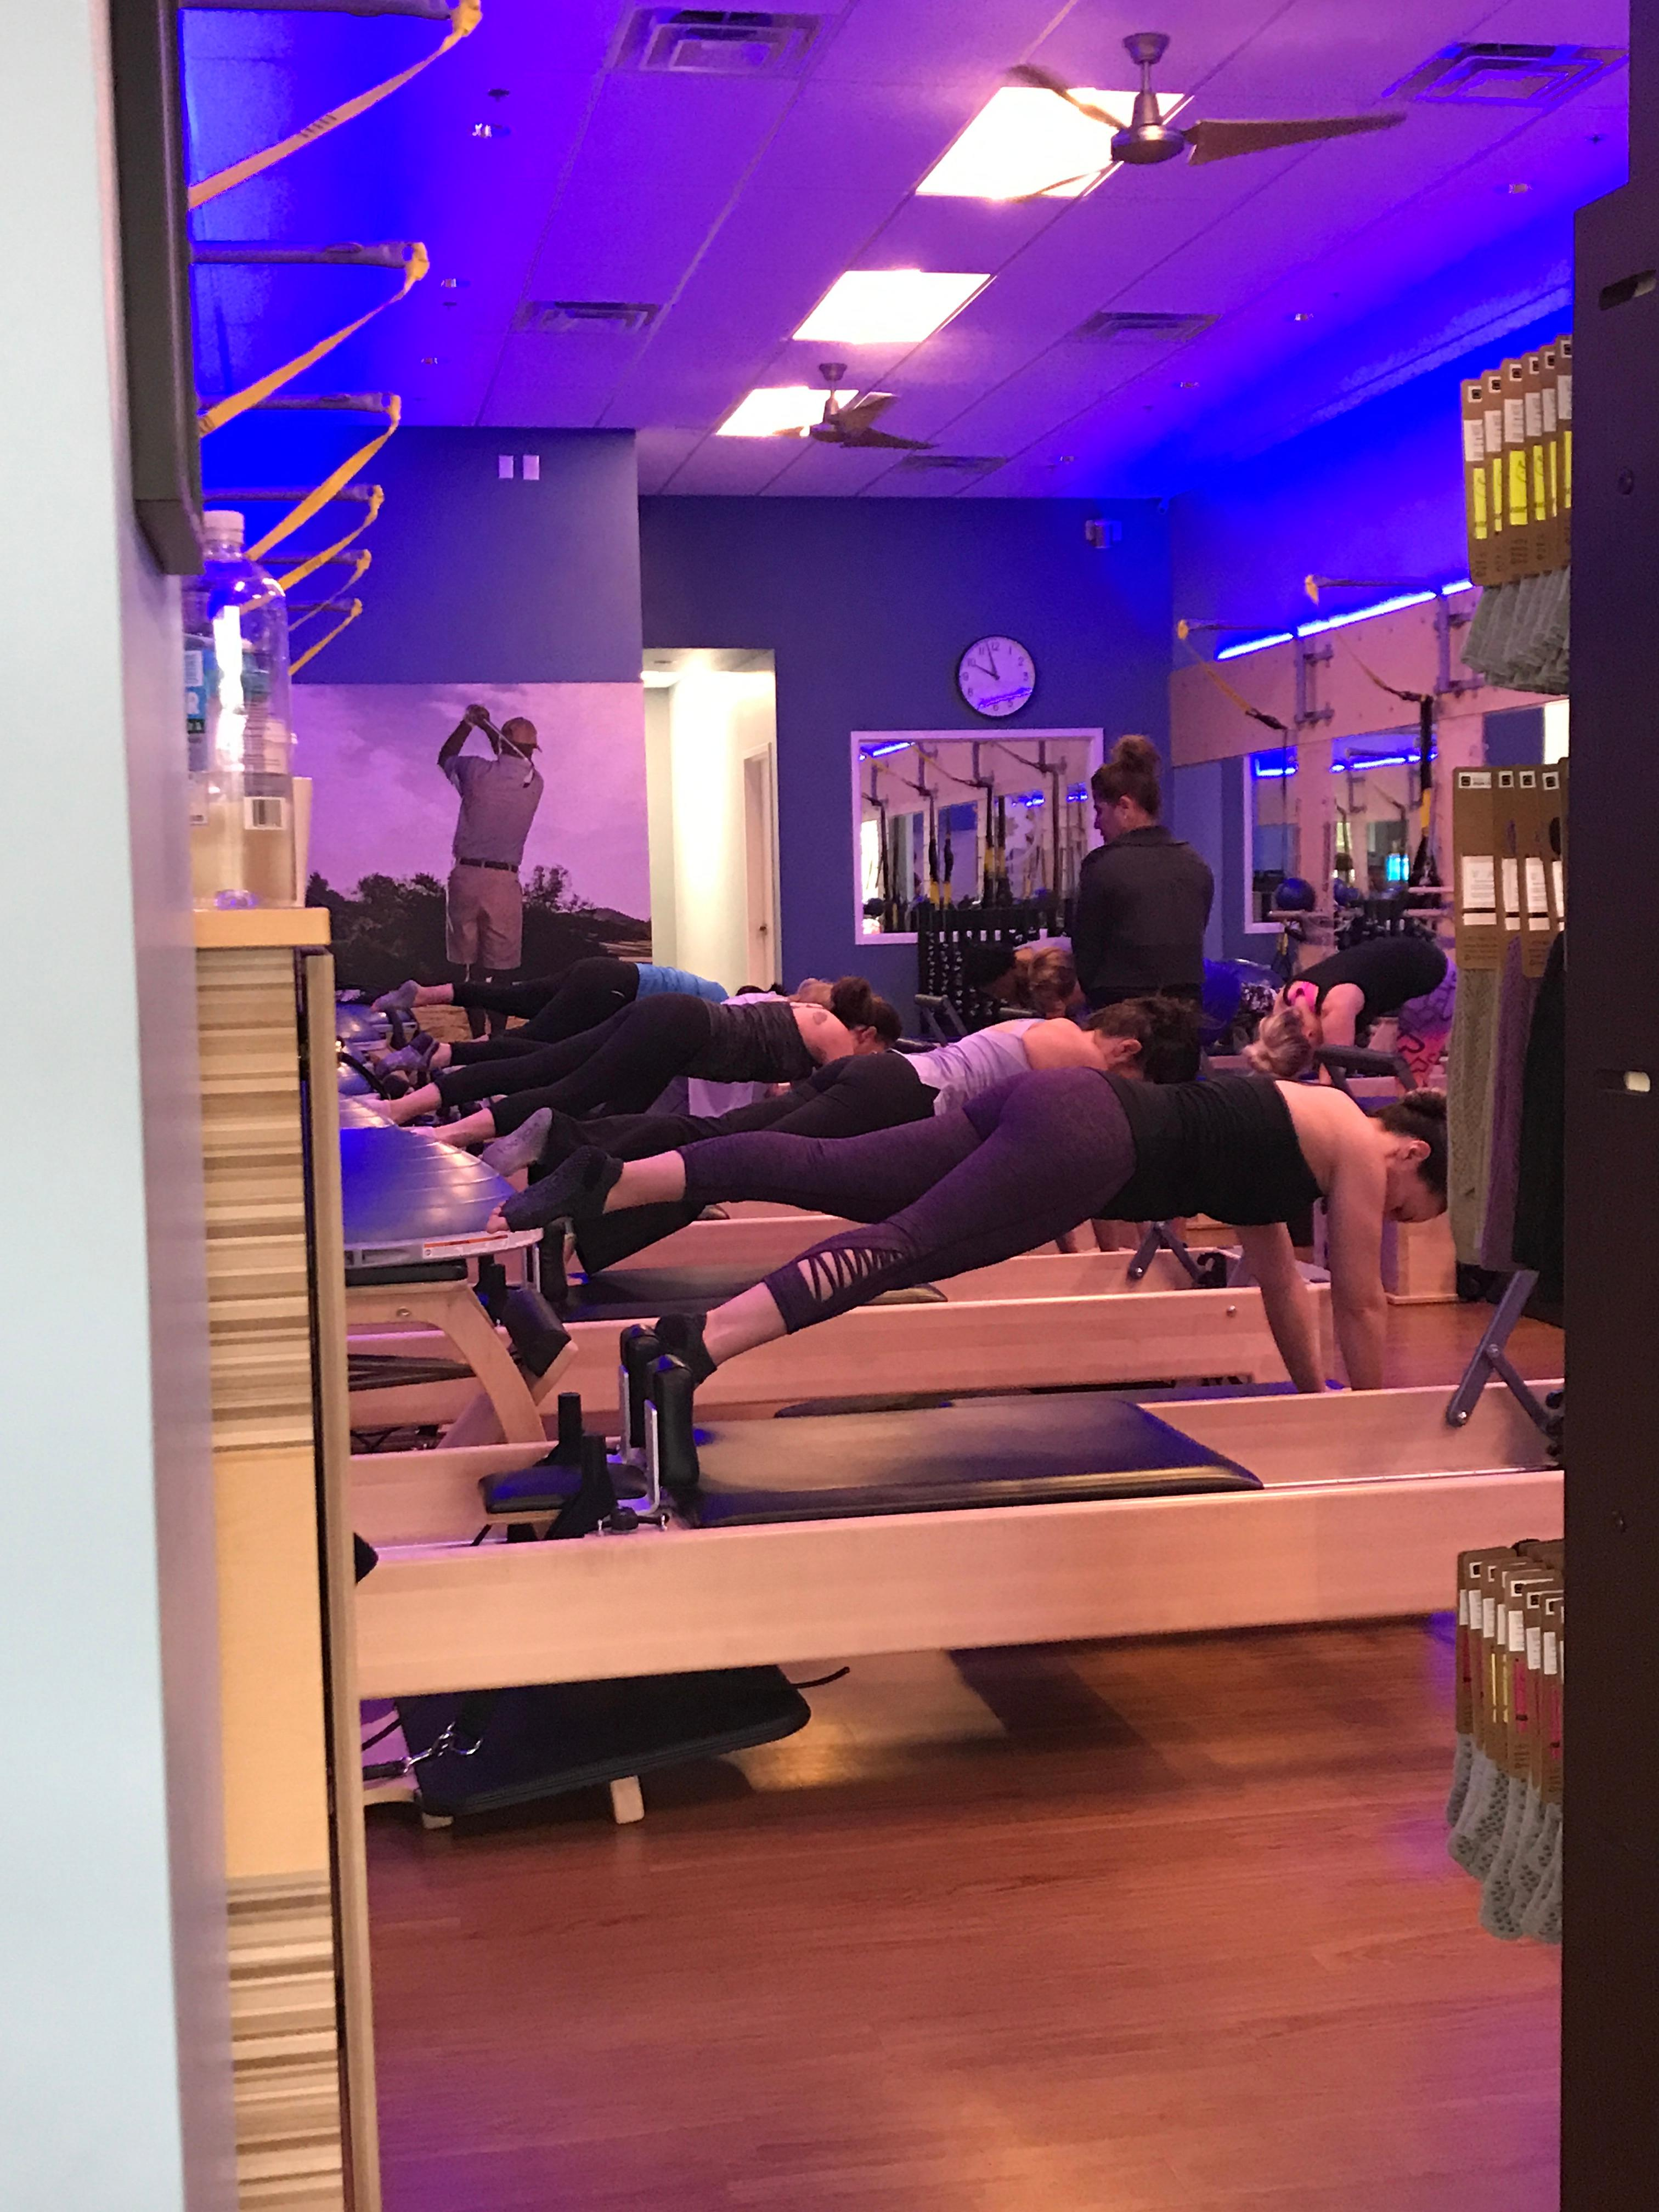 Club Pilates image 3